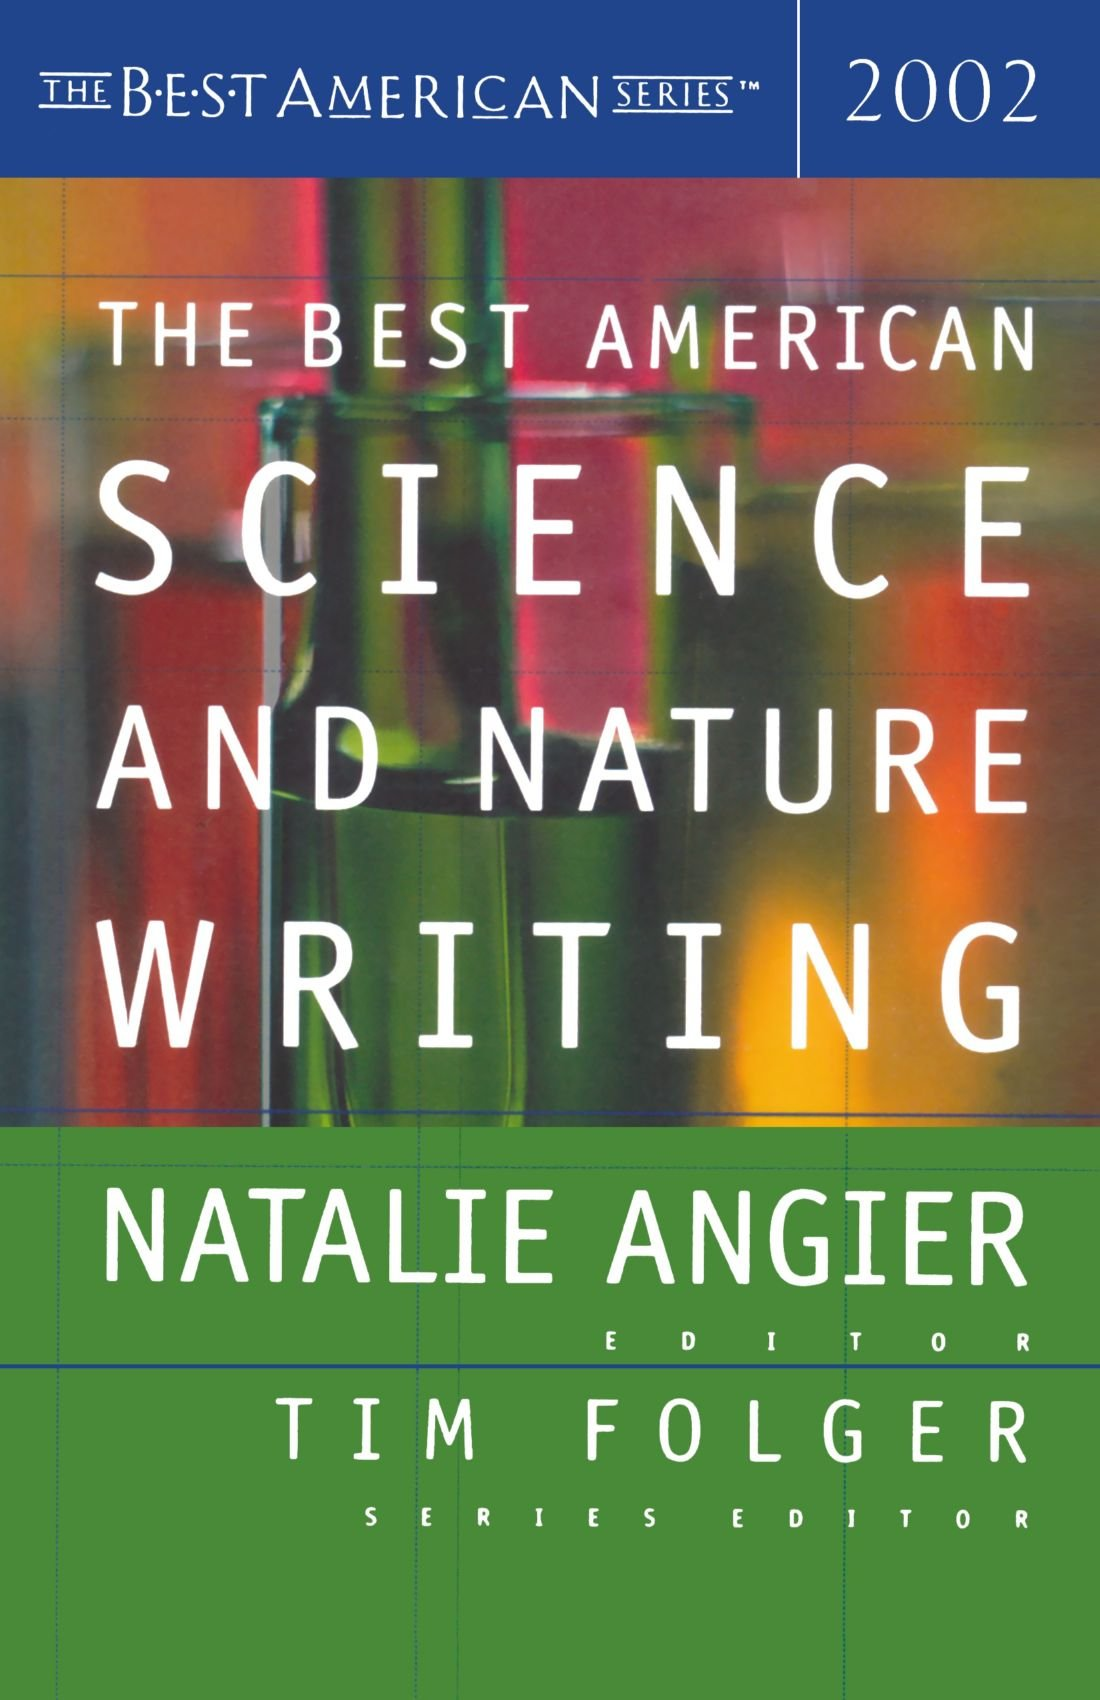 Download The Best American Science and Nature Writing 2002 (The Best American Series) ebook